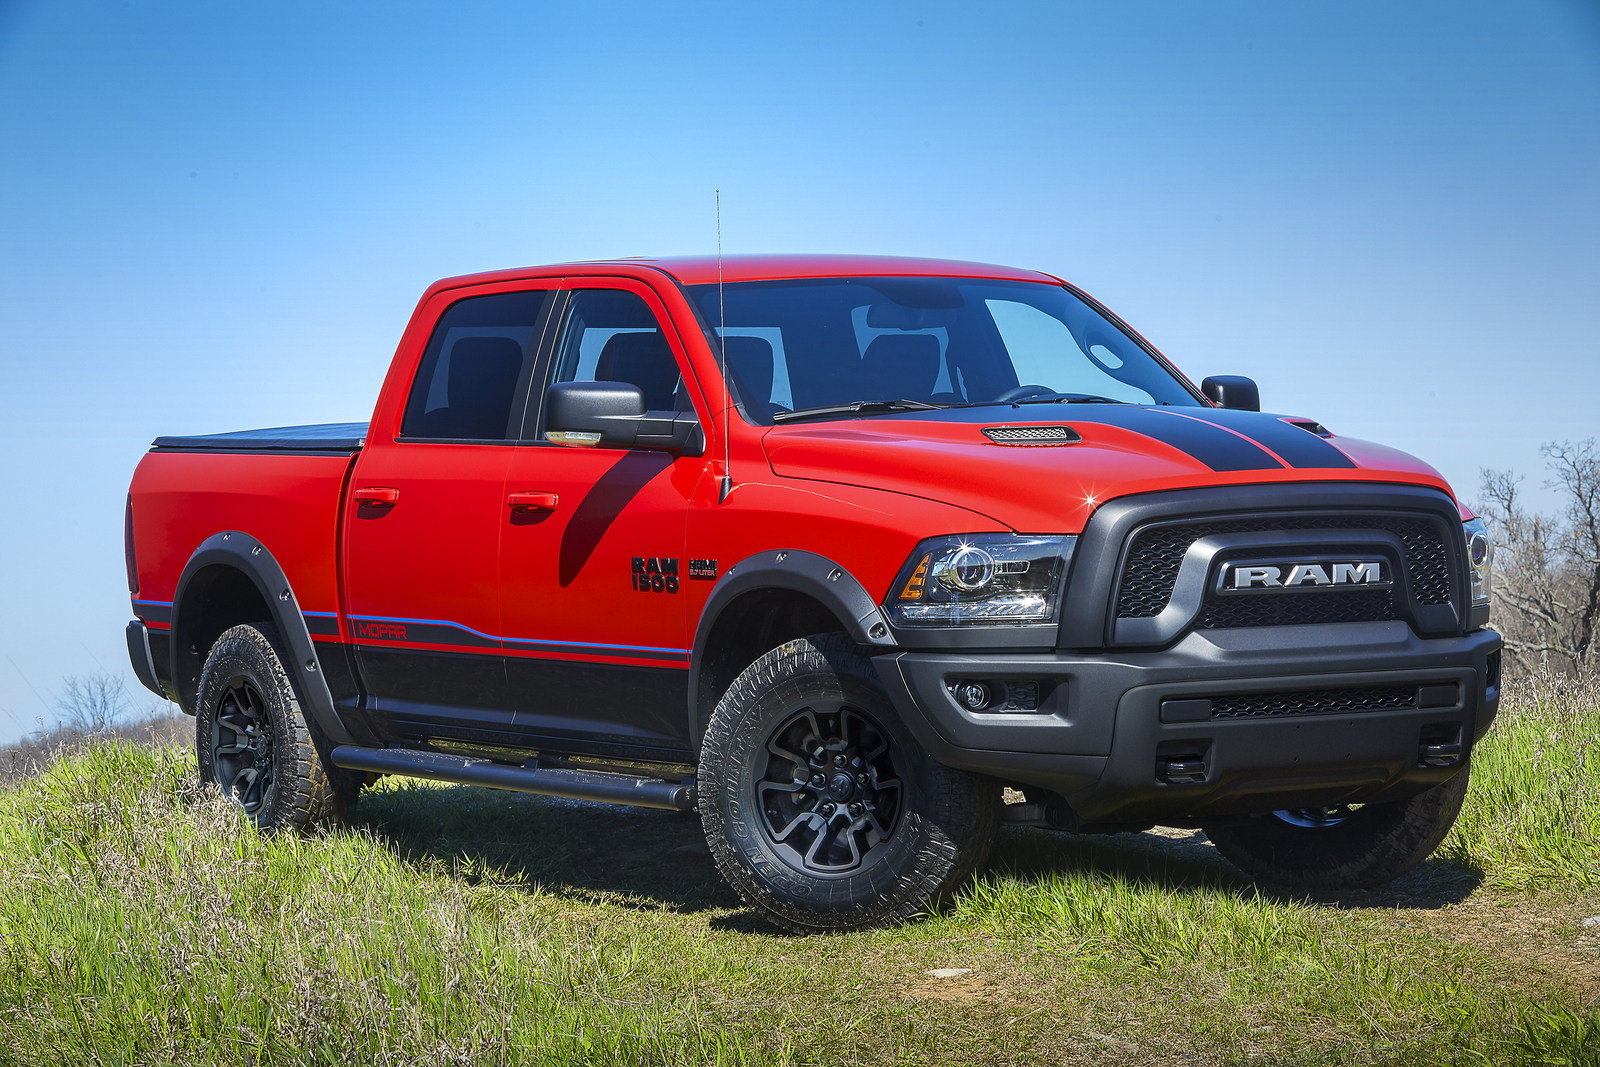 2016 mopar 39 16 ram rebel picture 679991 truck review top speed. Black Bedroom Furniture Sets. Home Design Ideas